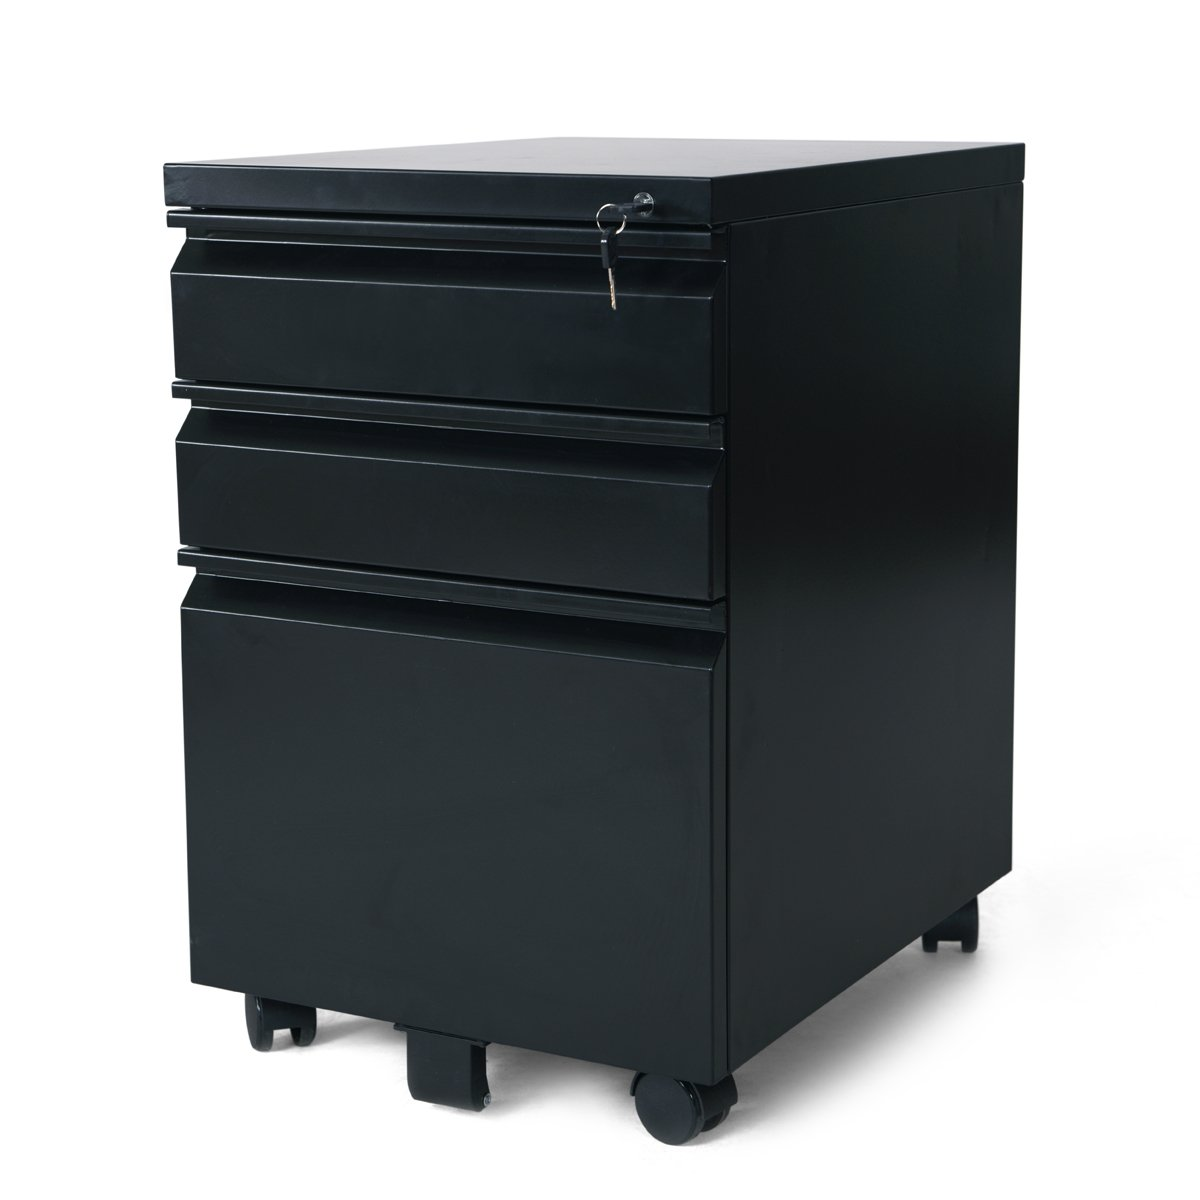 DEVAISE 3 Drawer Mobile File Cabinet with Lock - Black